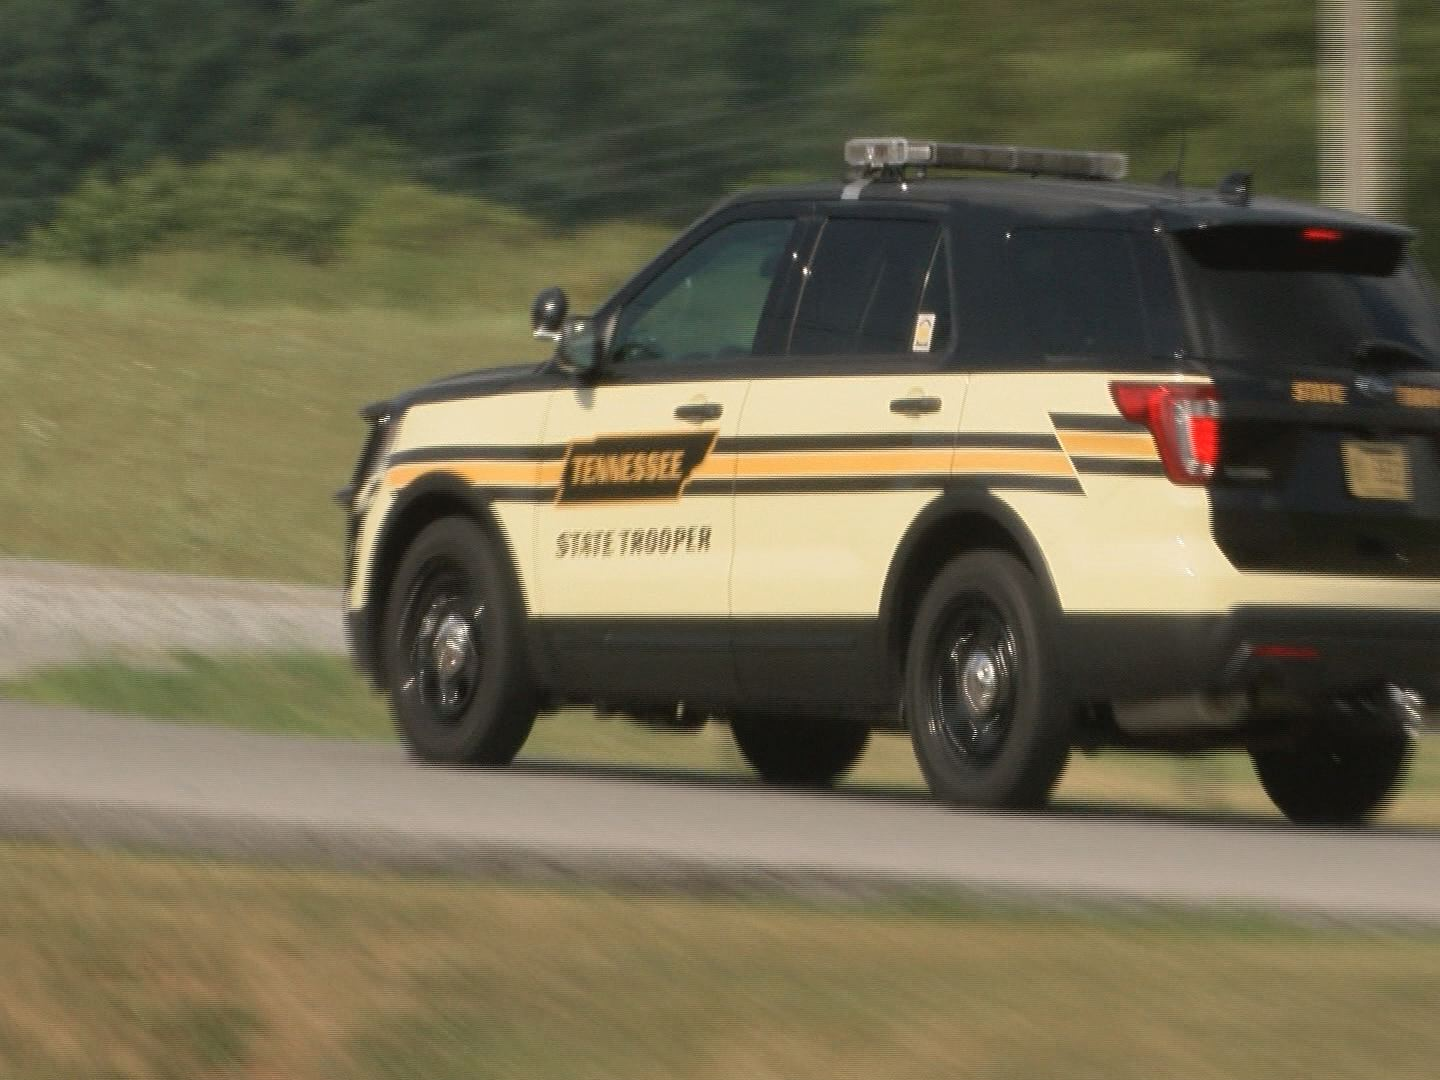 THP Colonel visits region, emphasizes trooper safety as top